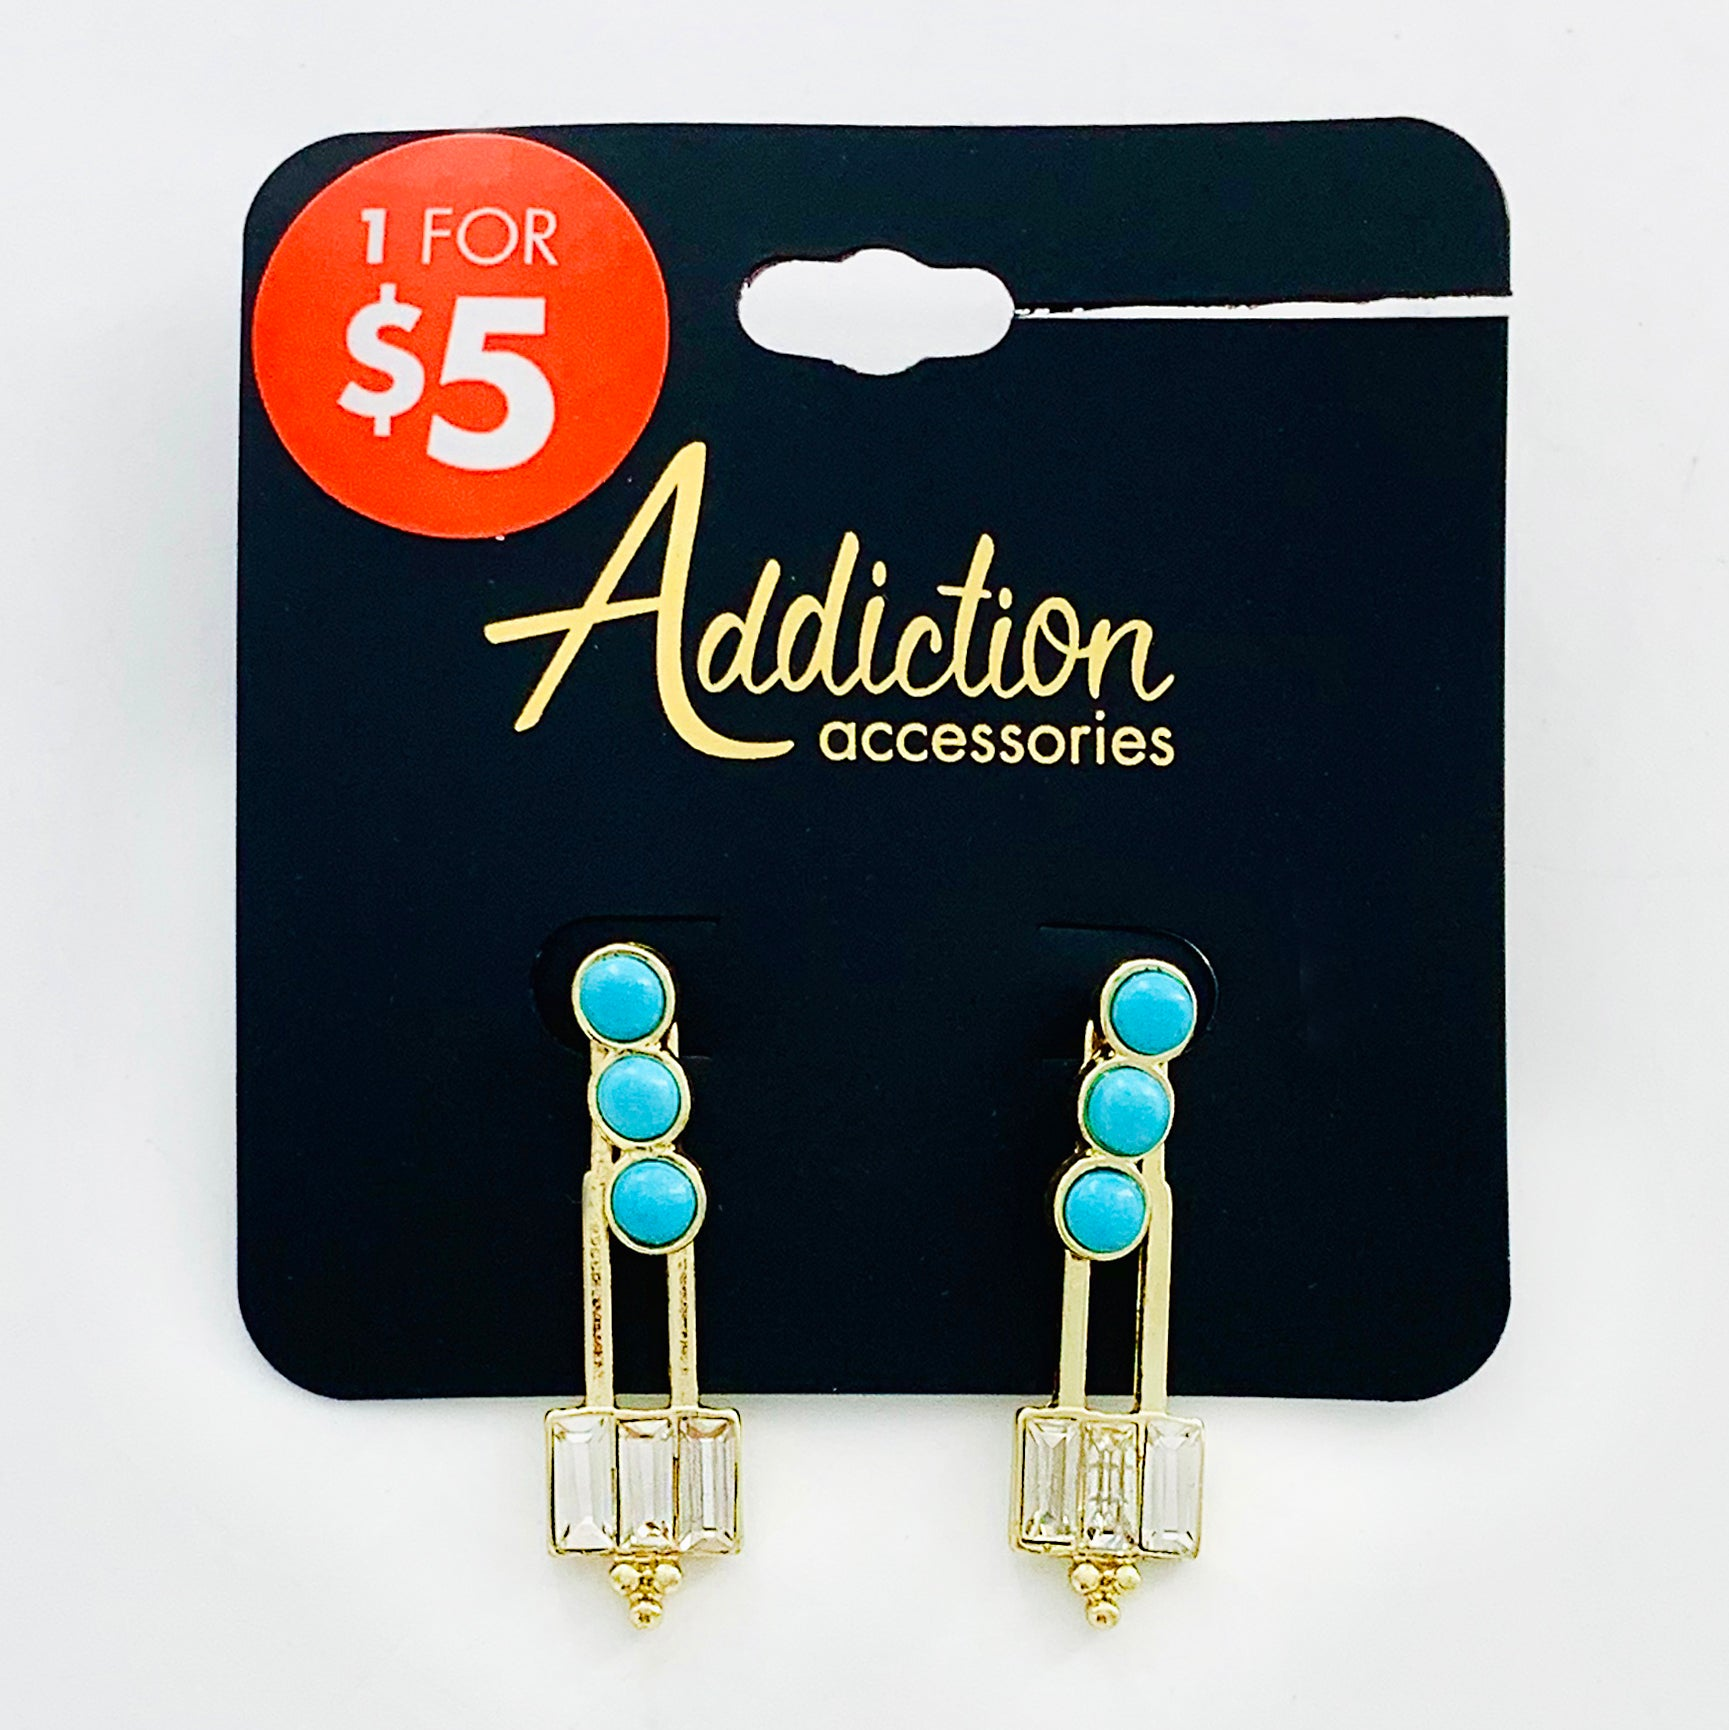 Gold earrings with three turquoise stones